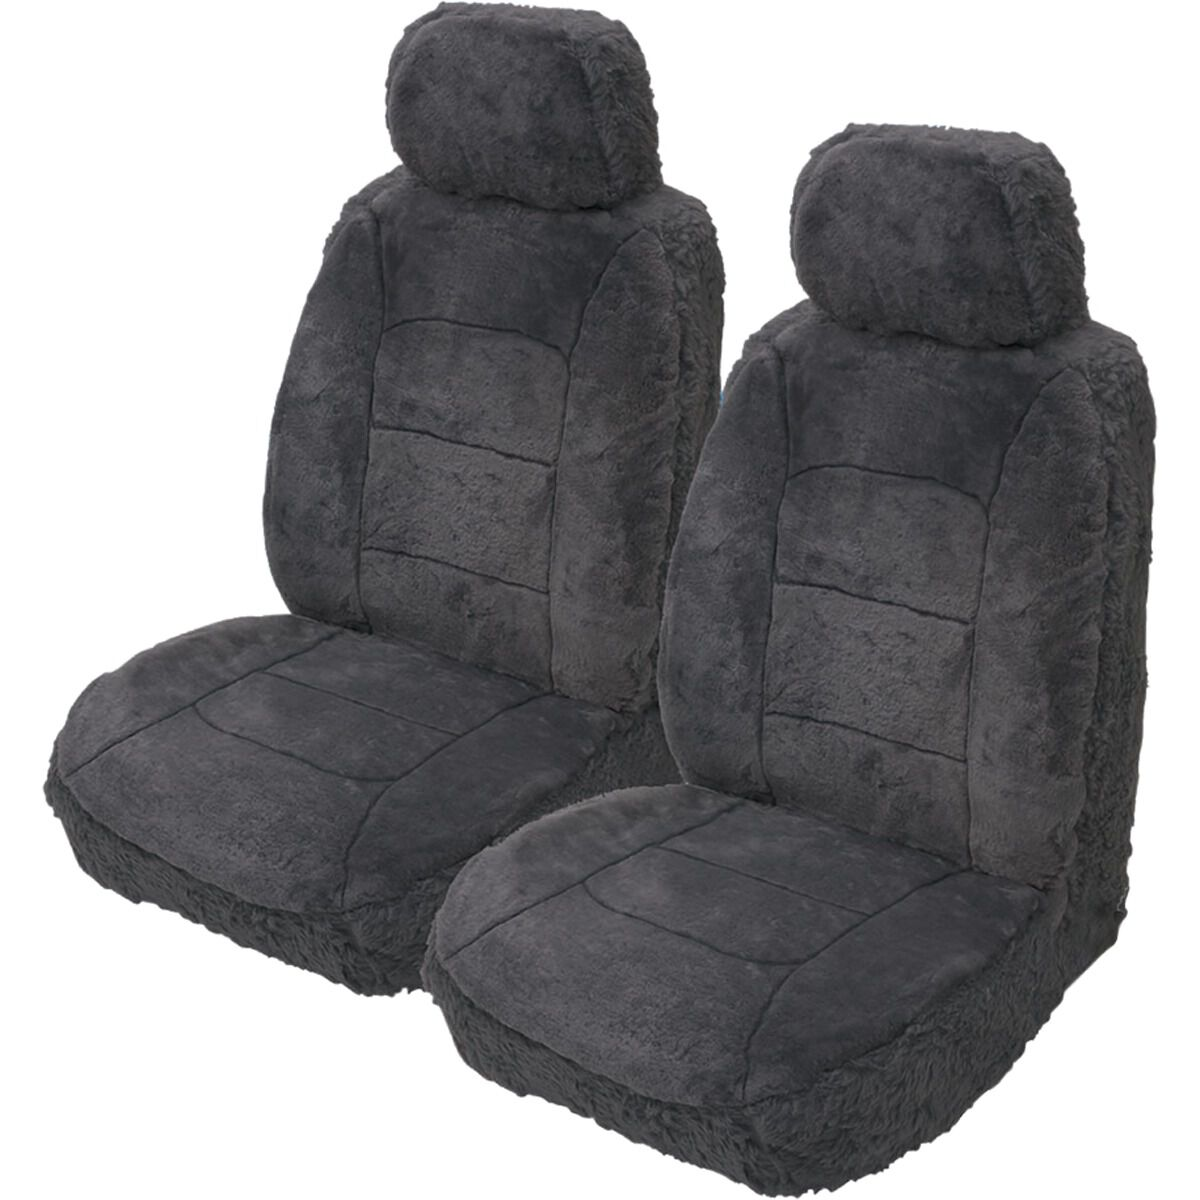 FRONT PAIR of Luxury QUILTED Protectors Car Seat Covers Fiat Ducato